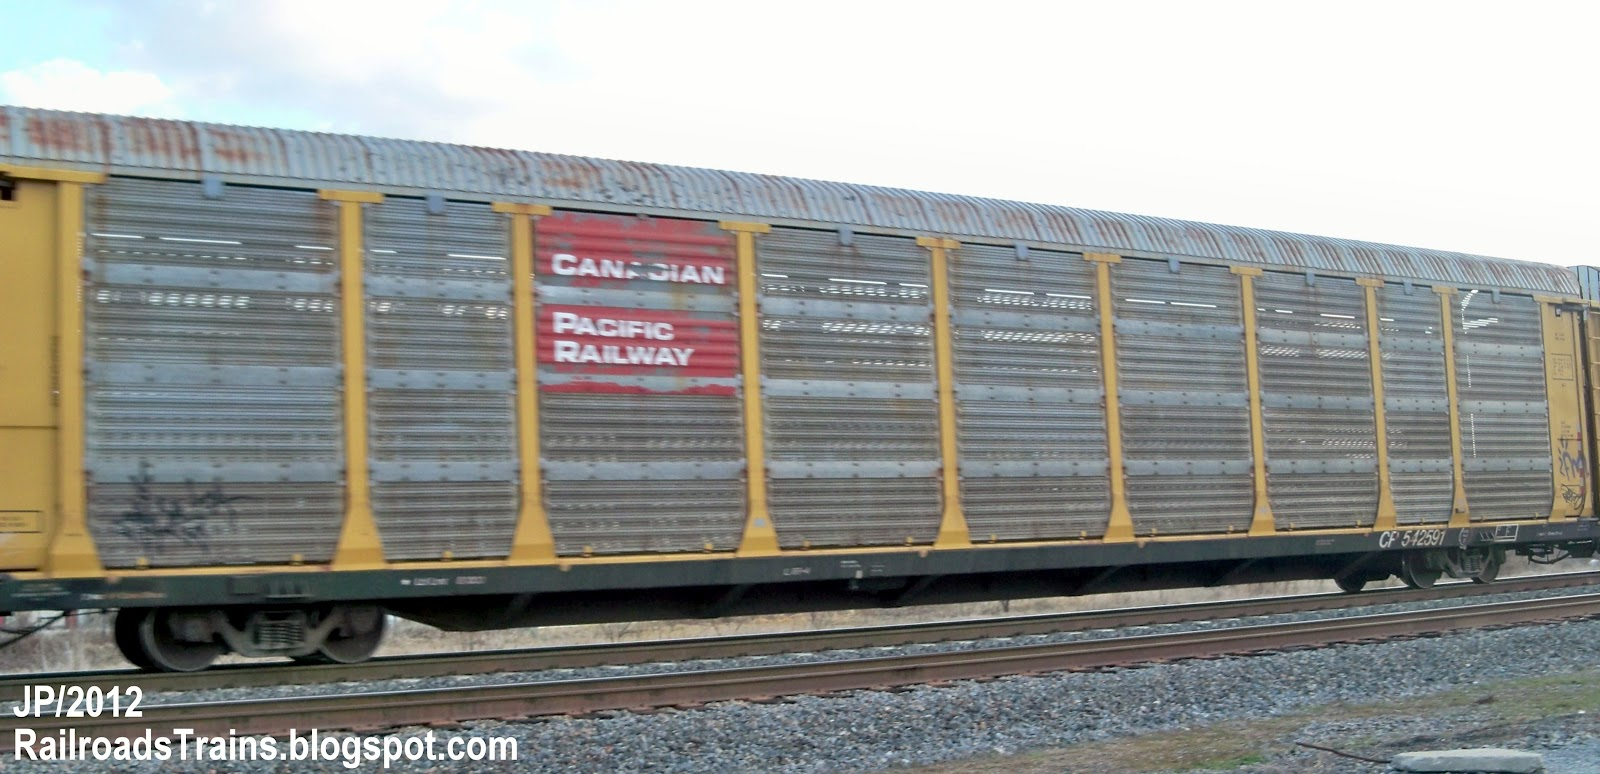 What Is An Empty Fema Mile Wide Auto Max Train Doing In Toronto